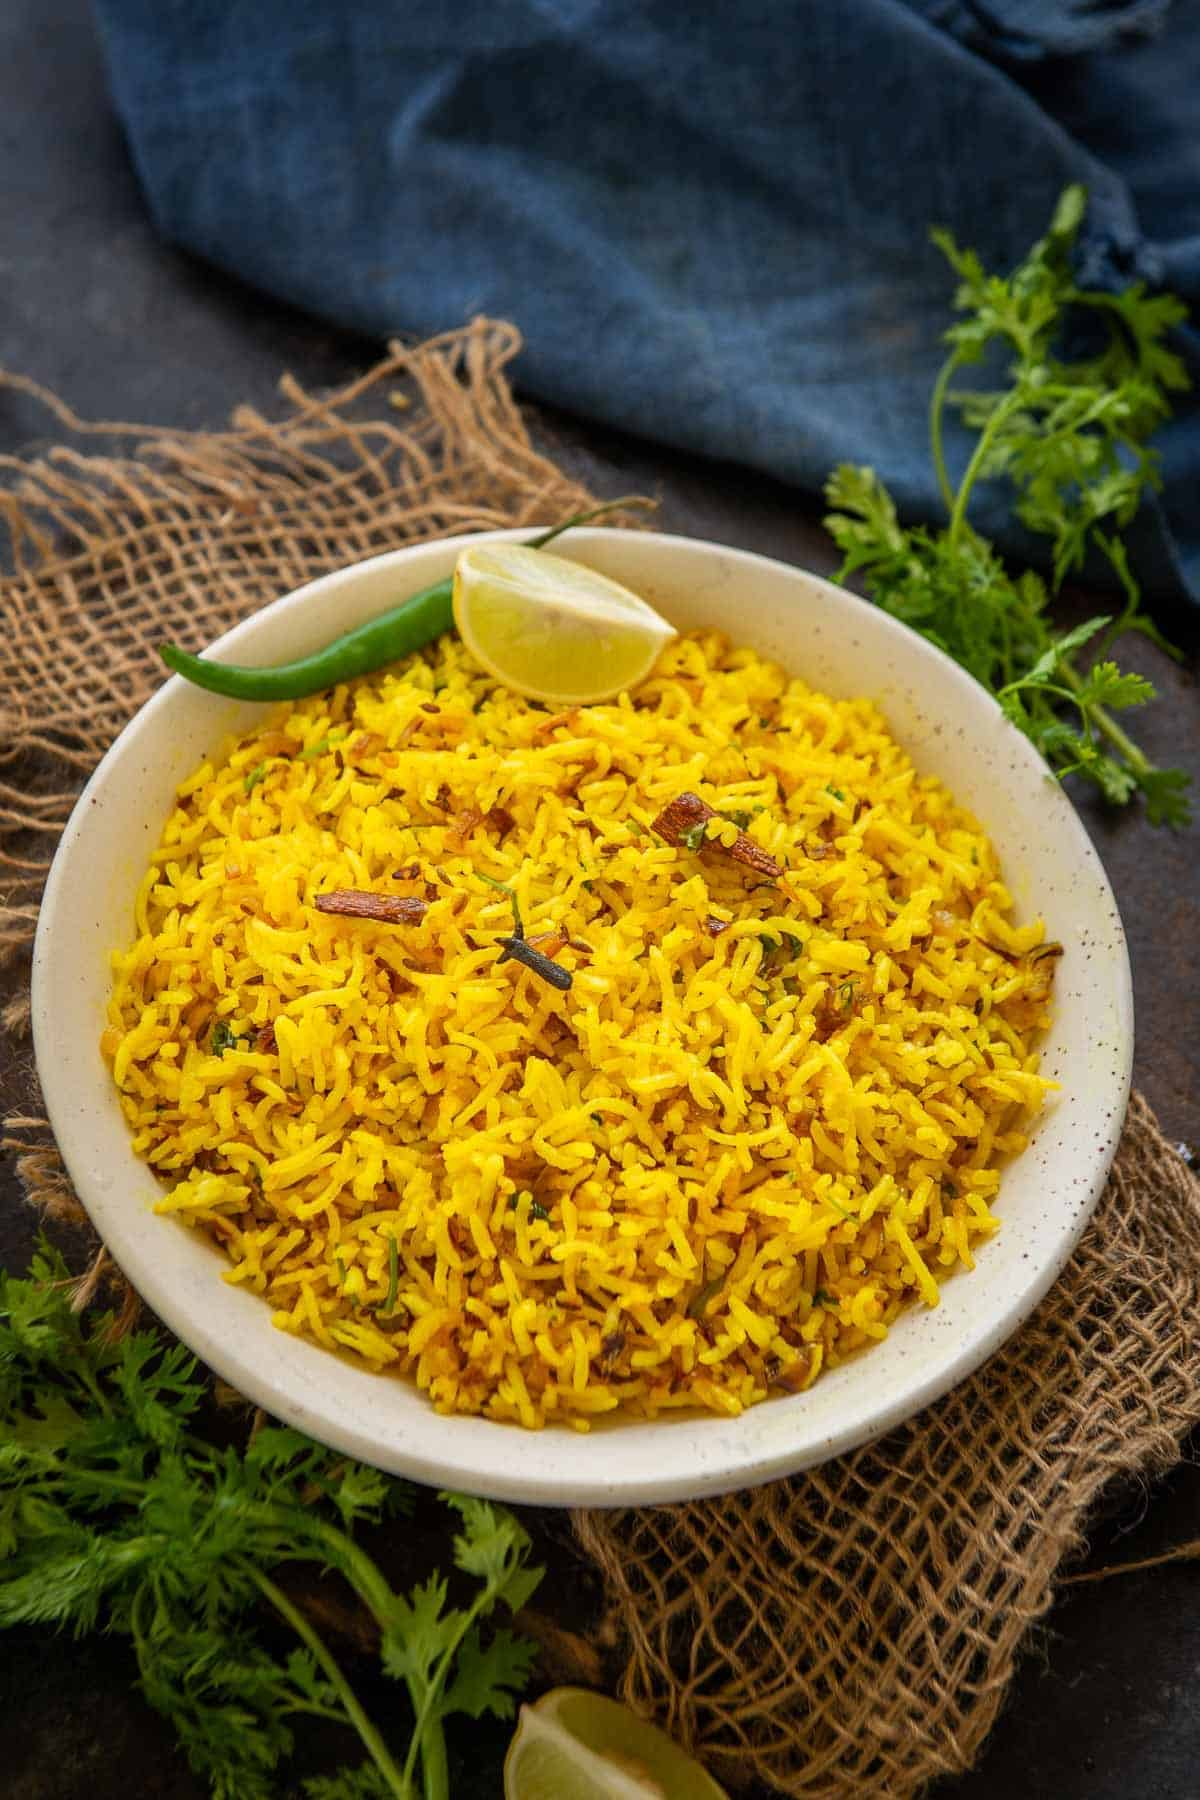 Turmeric rice served in a bowl.